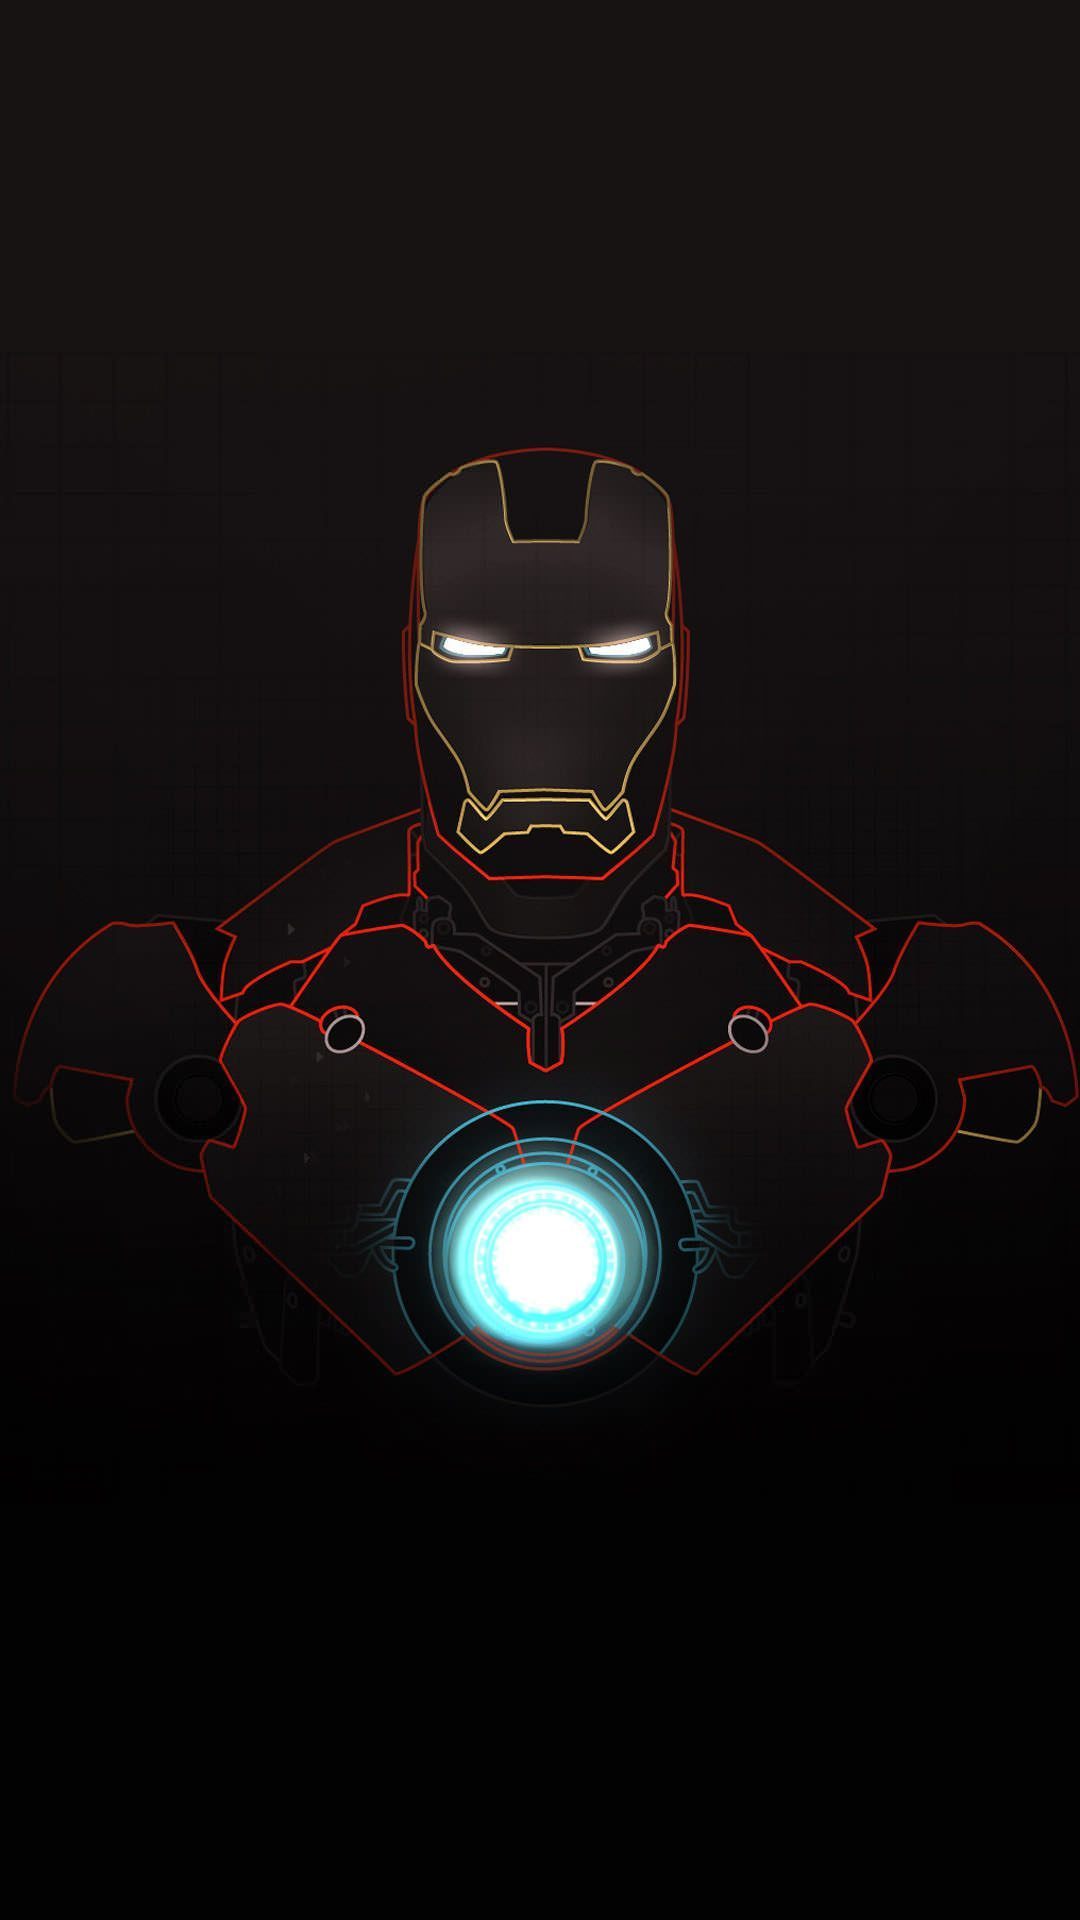 Download Iron Man Wallpaper Hd For Iphone X Wallpaper Hidup Iphone Wallpaper Iphone Kertas Dinding